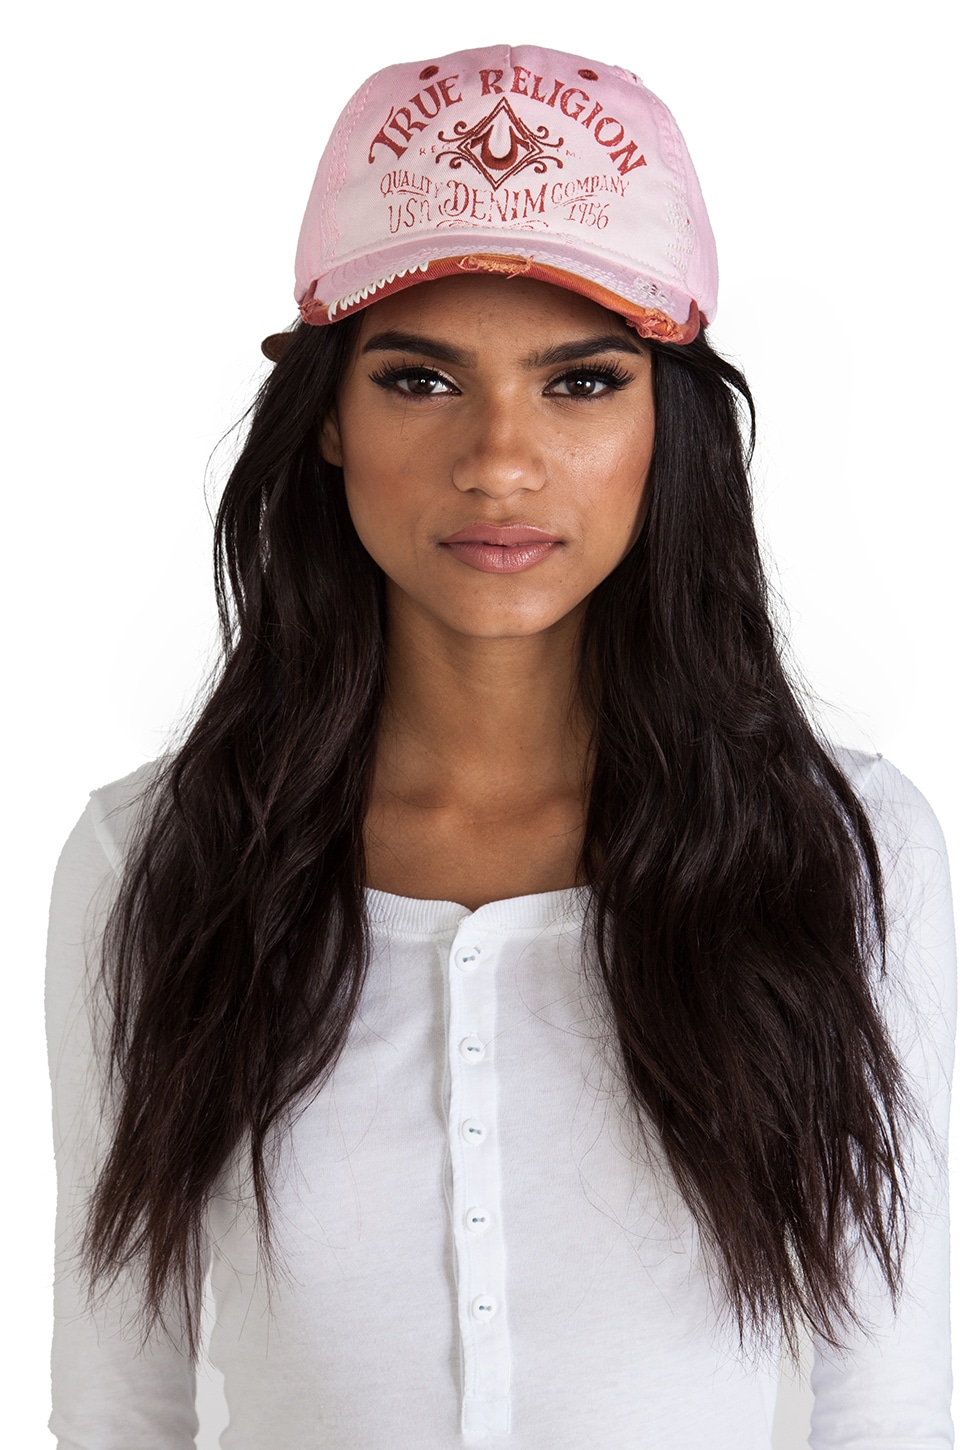 True Religion Vintage Logo Baseball Cap in Faded Strawberry Cream